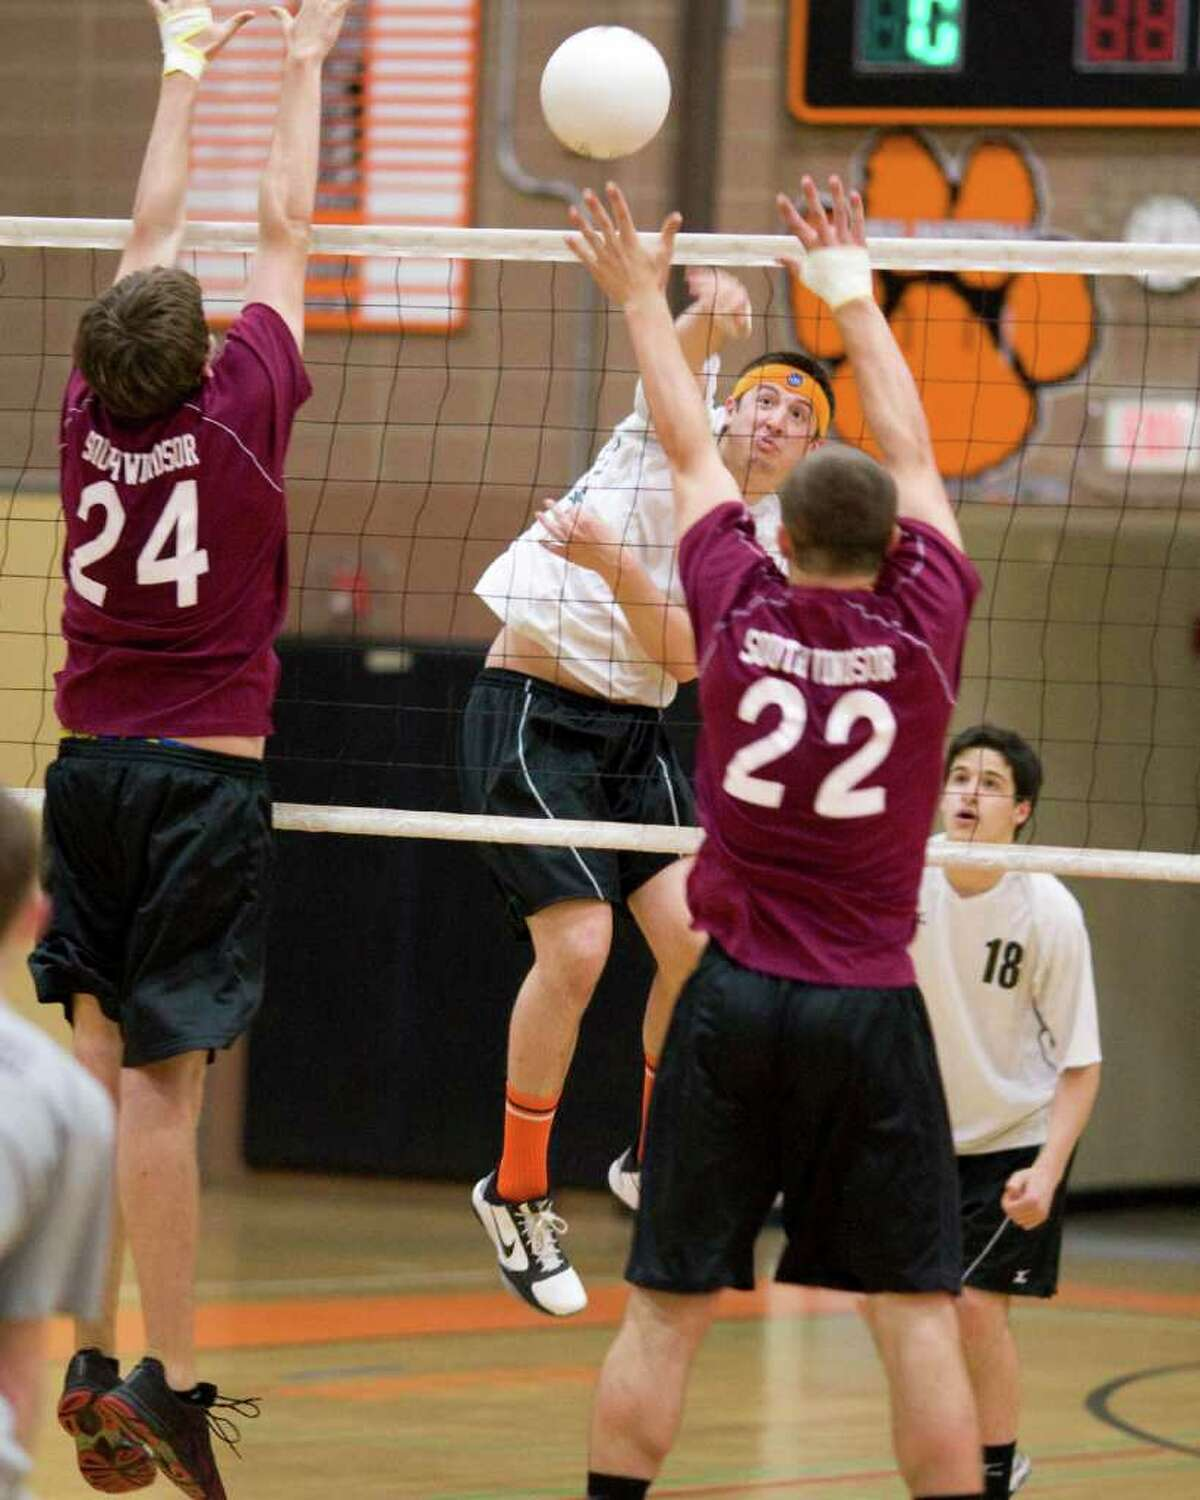 Ridgefield's Mike Peckham blasts a return against South Windsor in the Tigers' Class L state tournament quarterfinal match Friday at Ridgefield High School.